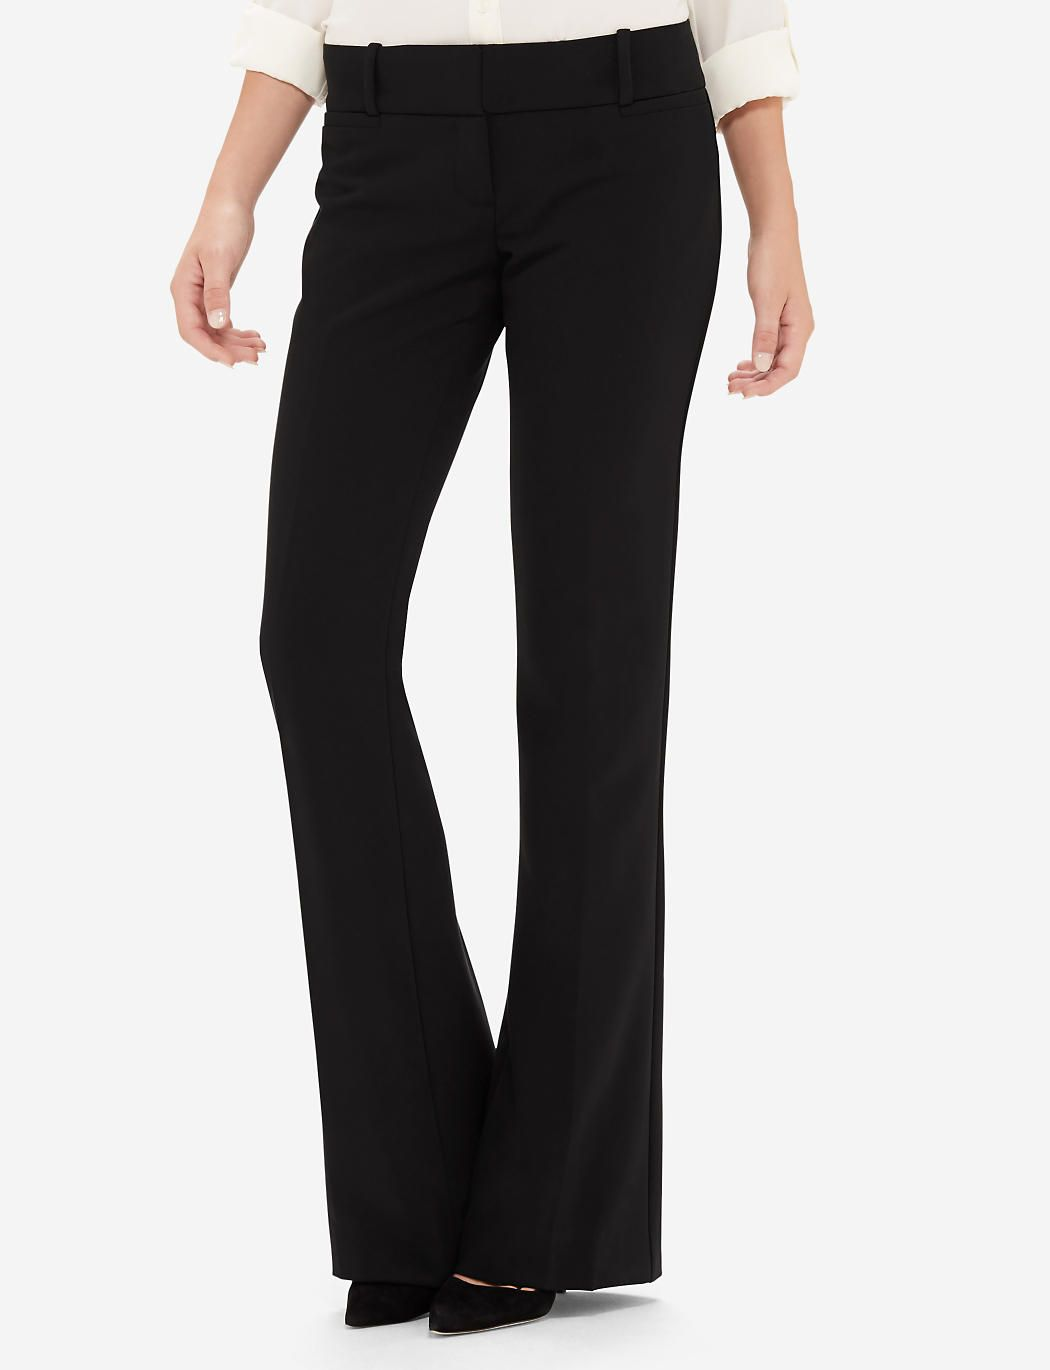 Drew Classic Flare Pants | LTD Luxe Flare Pants | THE LIMITED